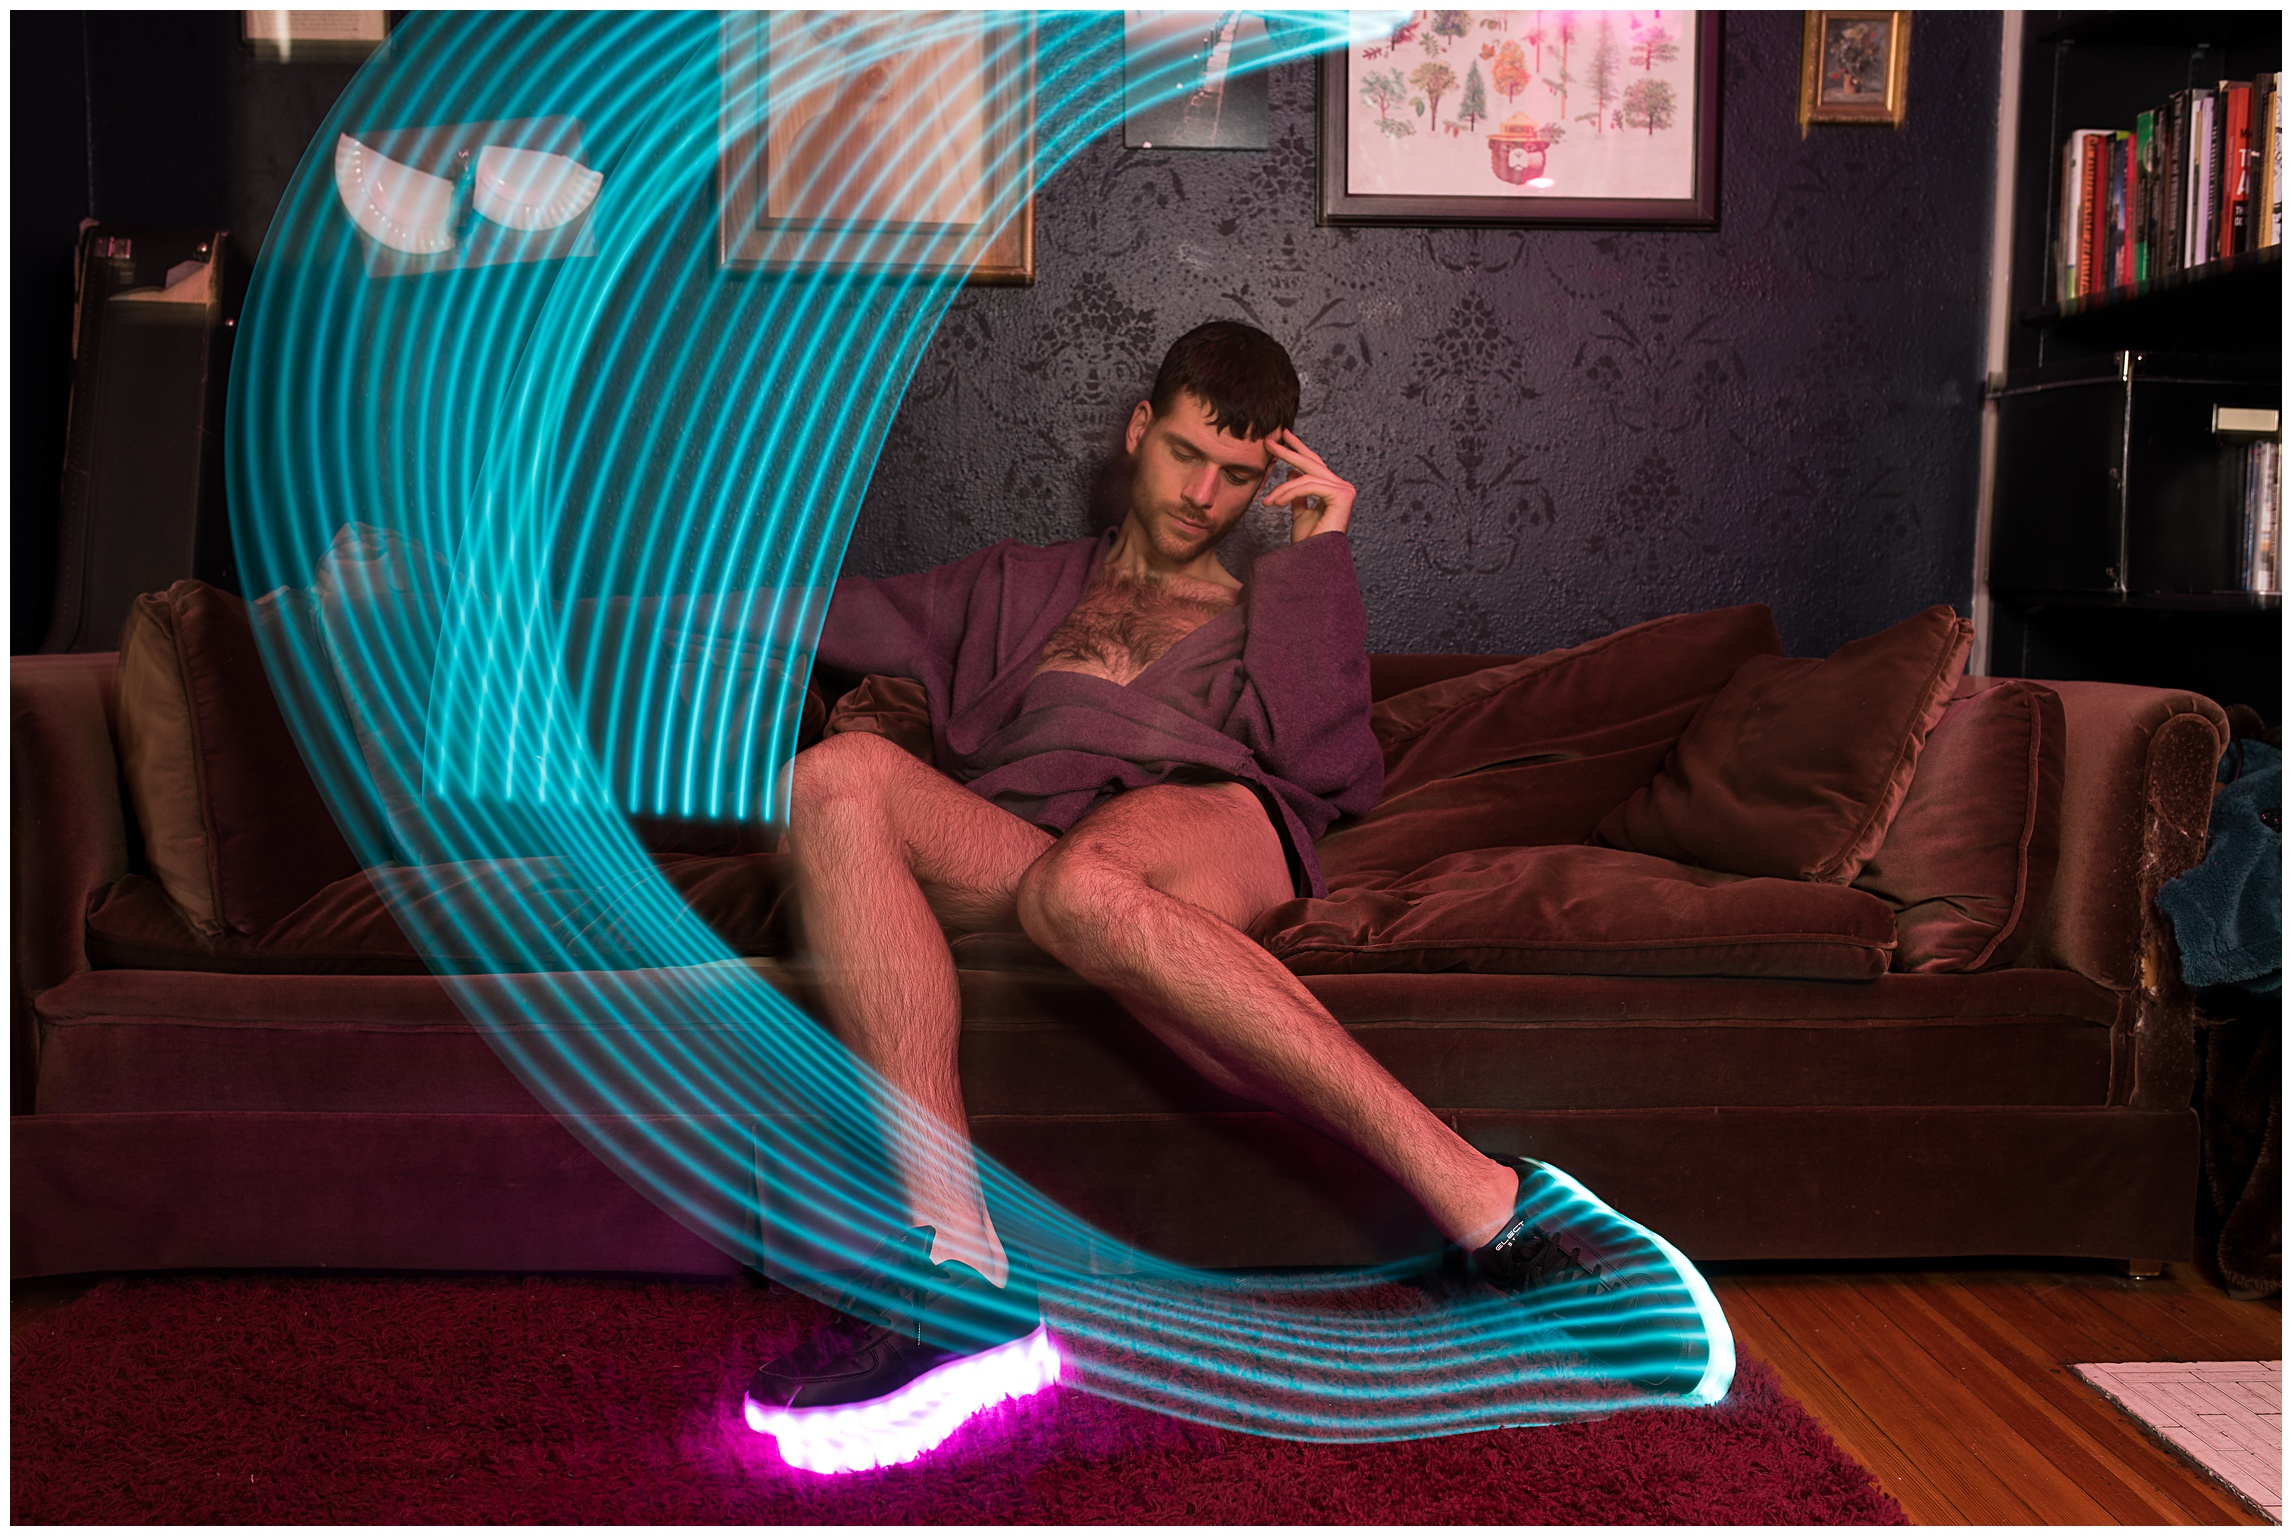 Sonja Salzburg of Sonja K Photography portrait of a dancer with light up shoes in motion on a brown couch in an LGBTQ house in Denver, Colorado.